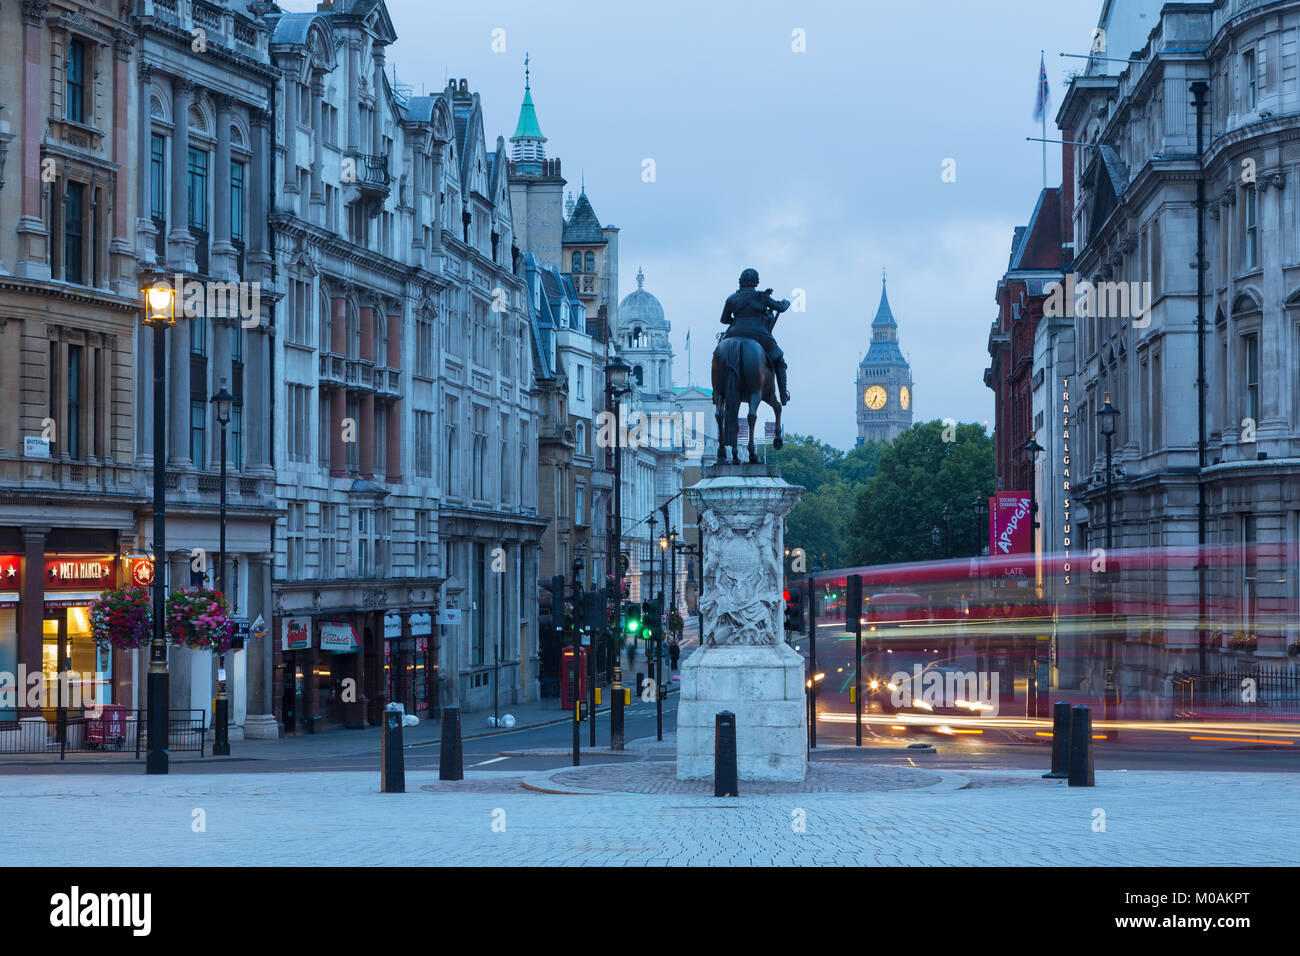 LONDON, GREAT BRITAIN - SEPTEMBER 18, 2017: The view from Trafalgar square at dusk. Stock Photo